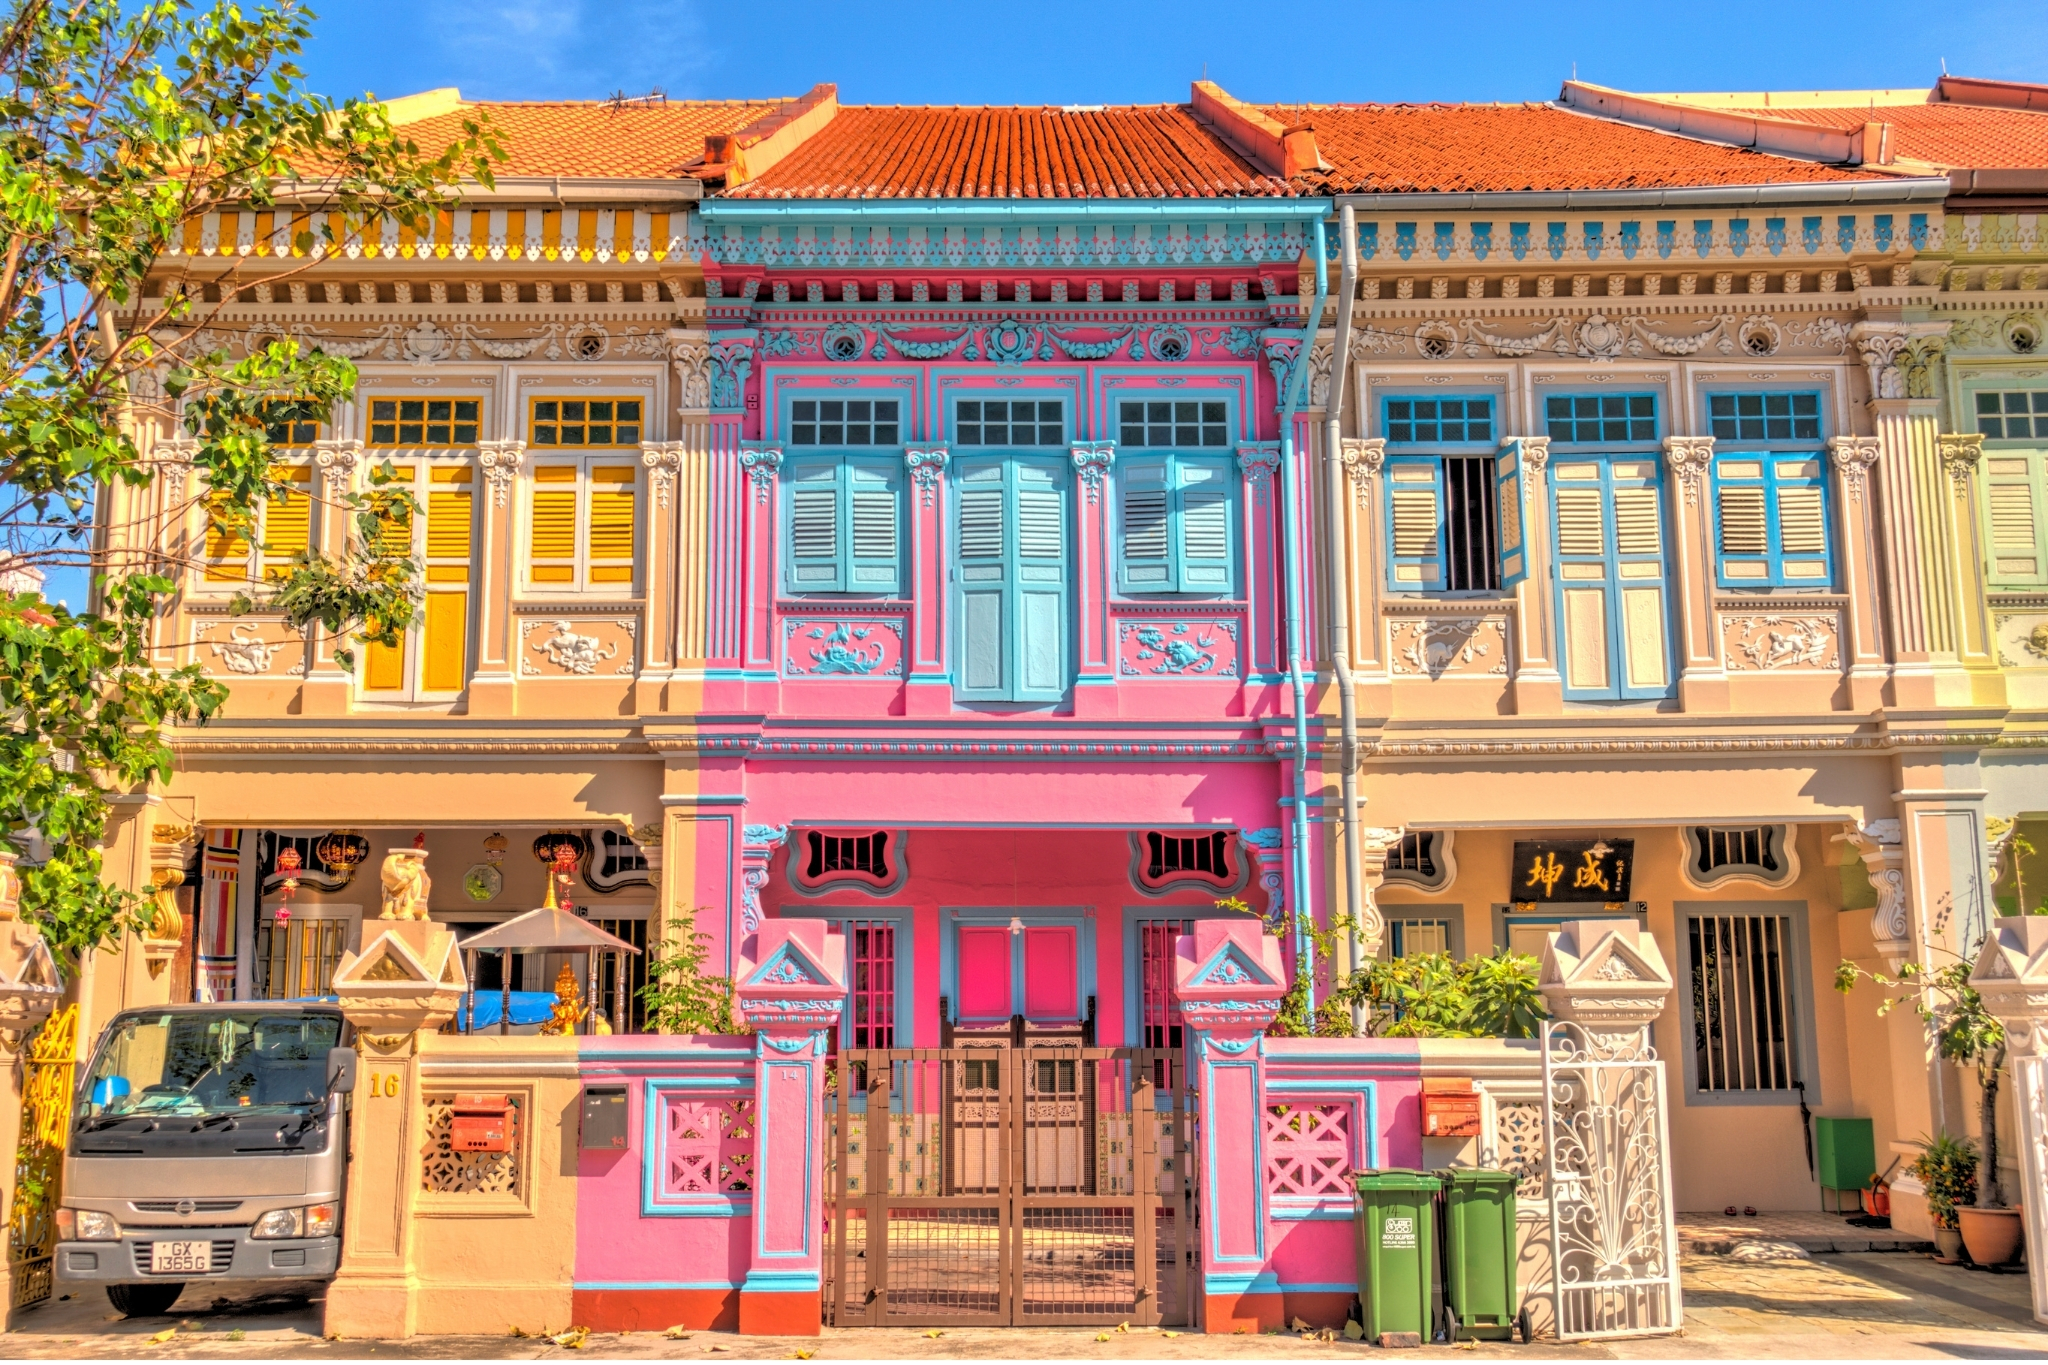 Katong makes the cut as one of the coolest neighbourhoods in the world